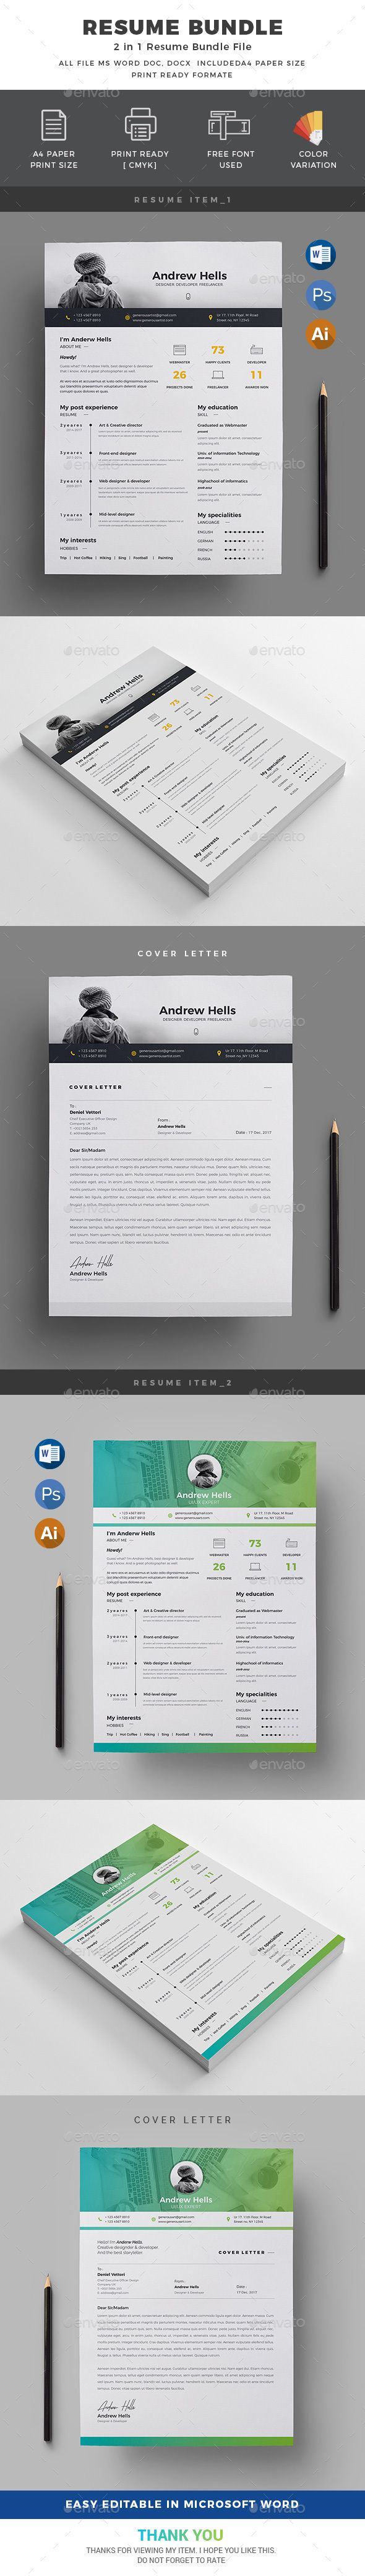 Resume Bundle2 in 1 92 best Effective